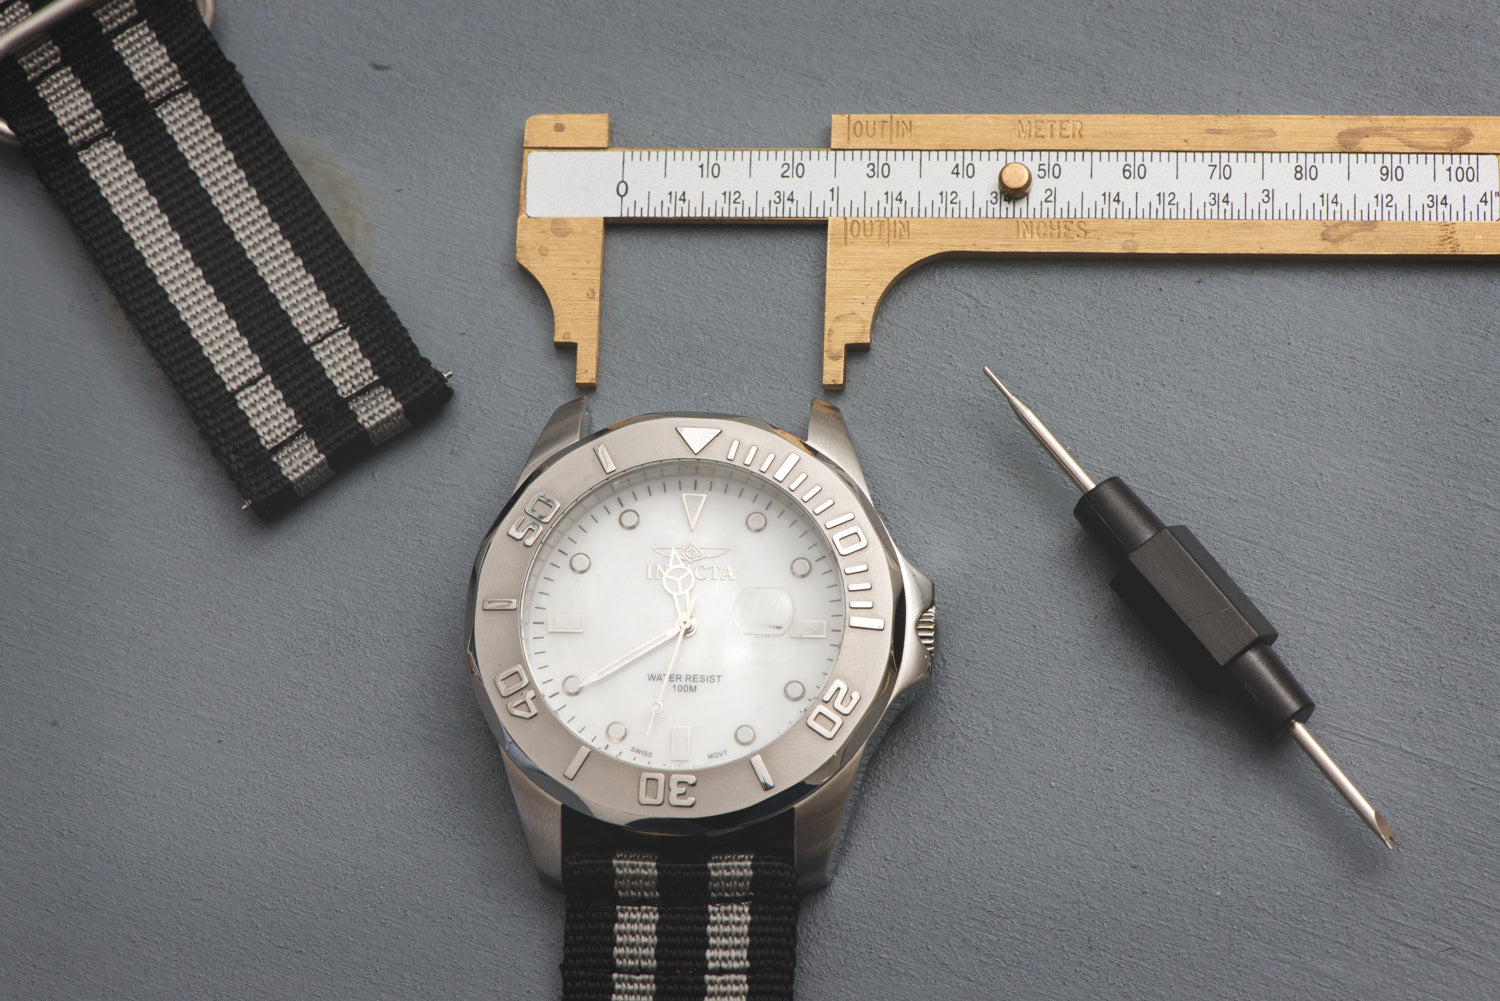 Measuring Lug Width for a Watch Strap